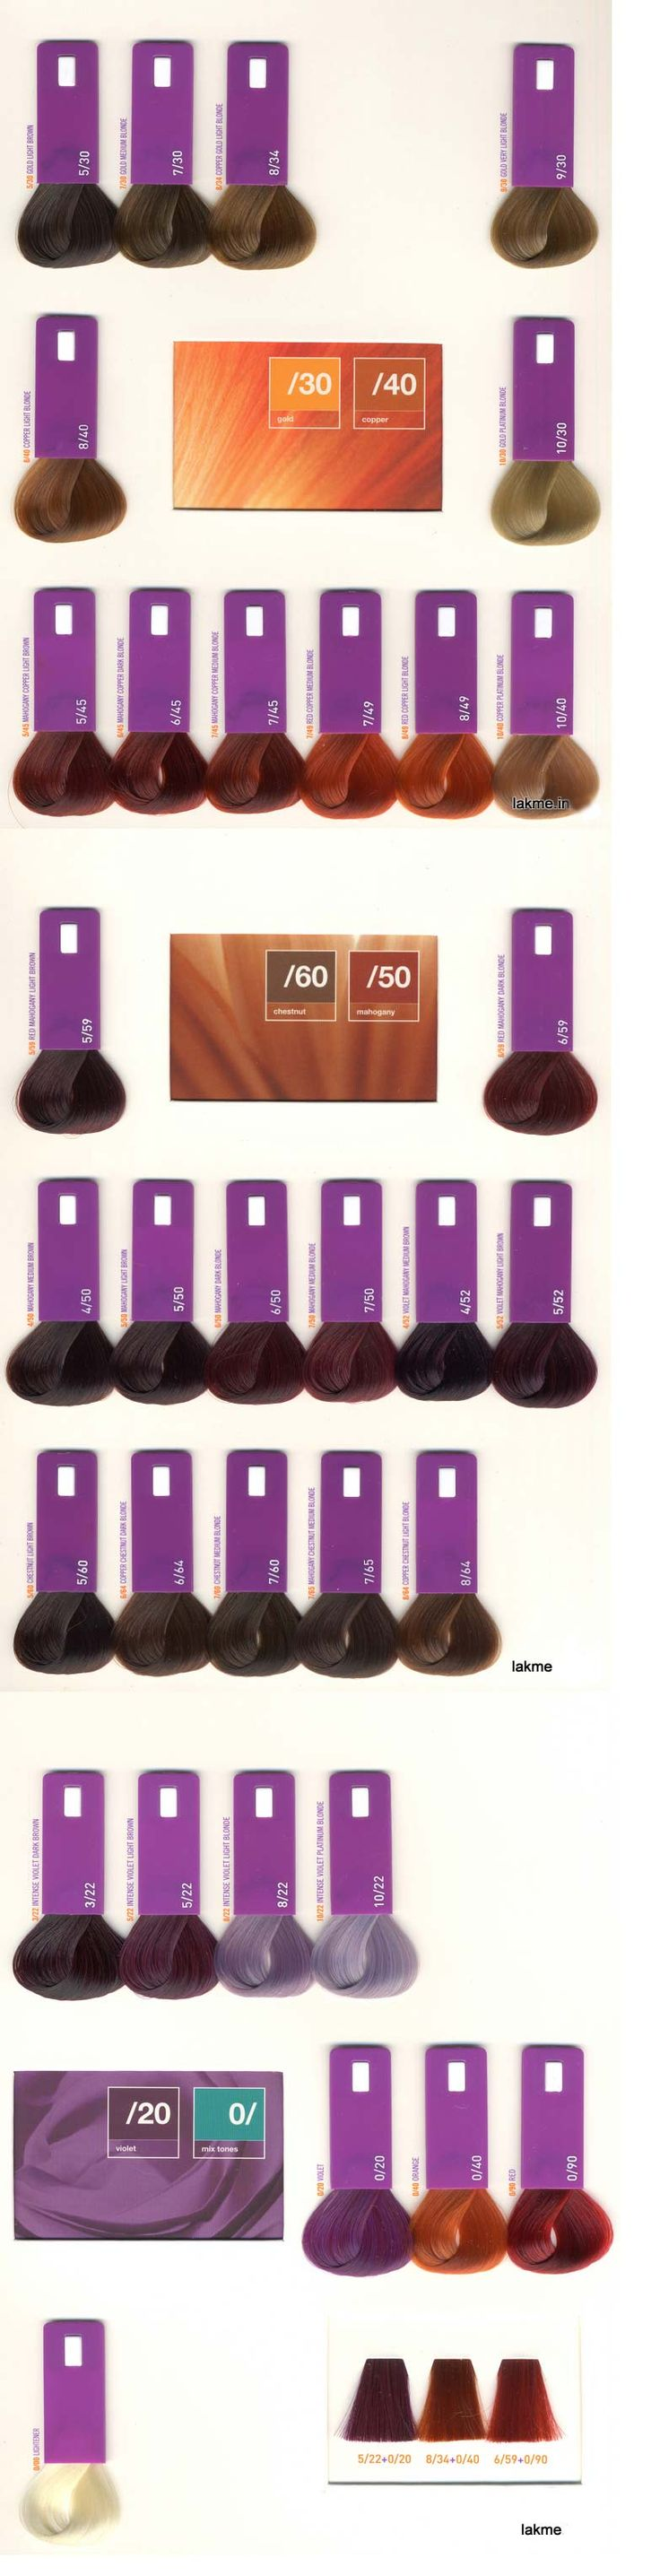 lakme gloss color rinse swatch book - Matrix So Color Swatch Book